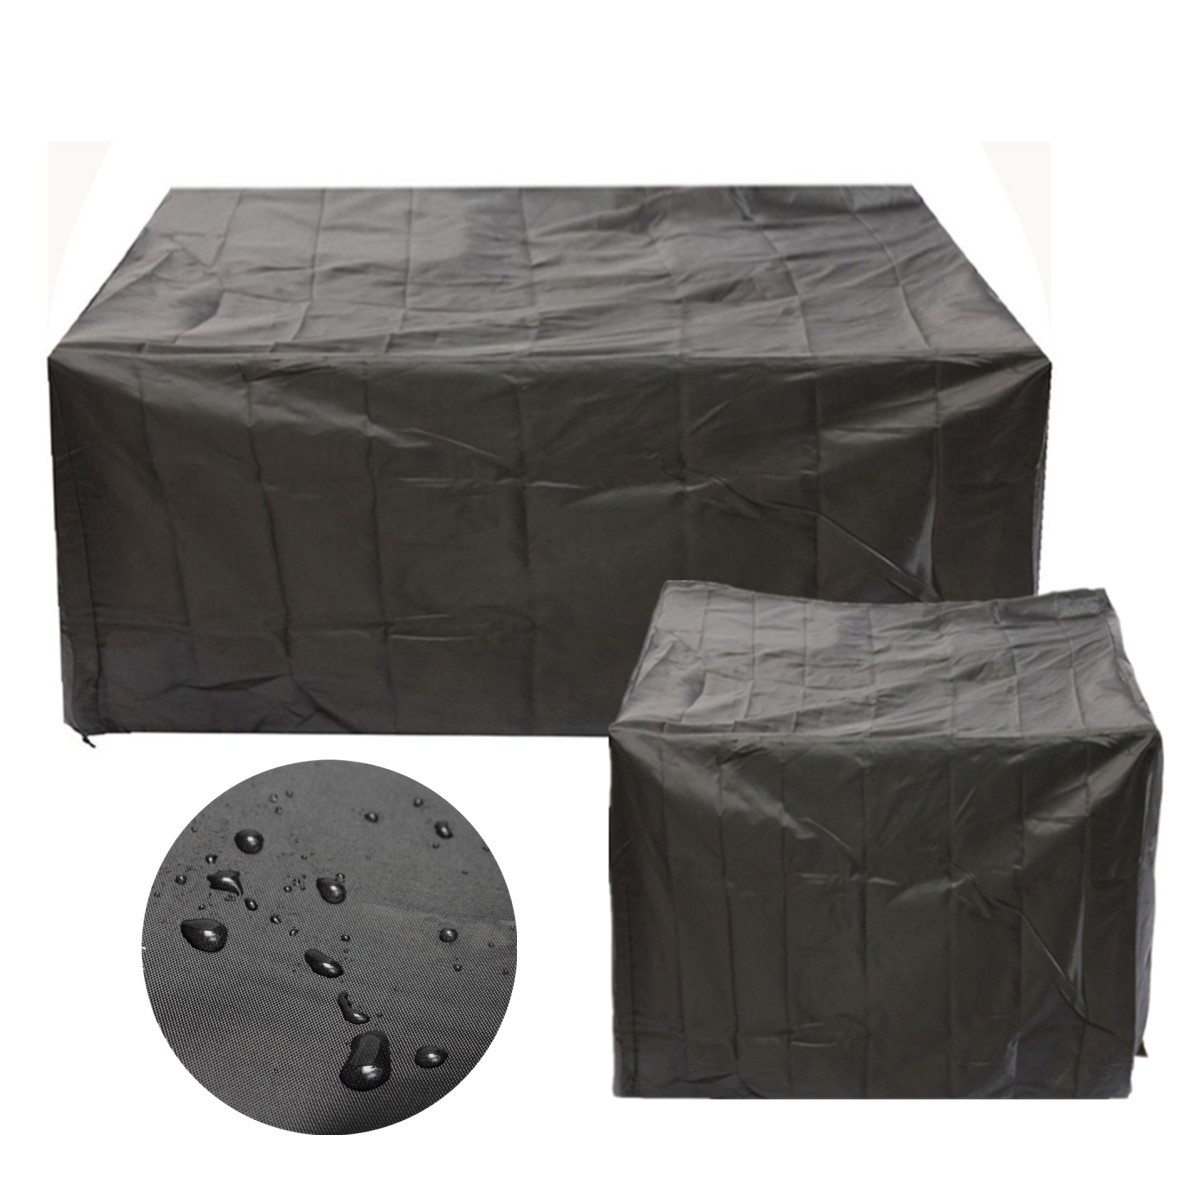 waterproof outdoor chair covers australia sling lounge 2 size black polyester pvc sofa couch table